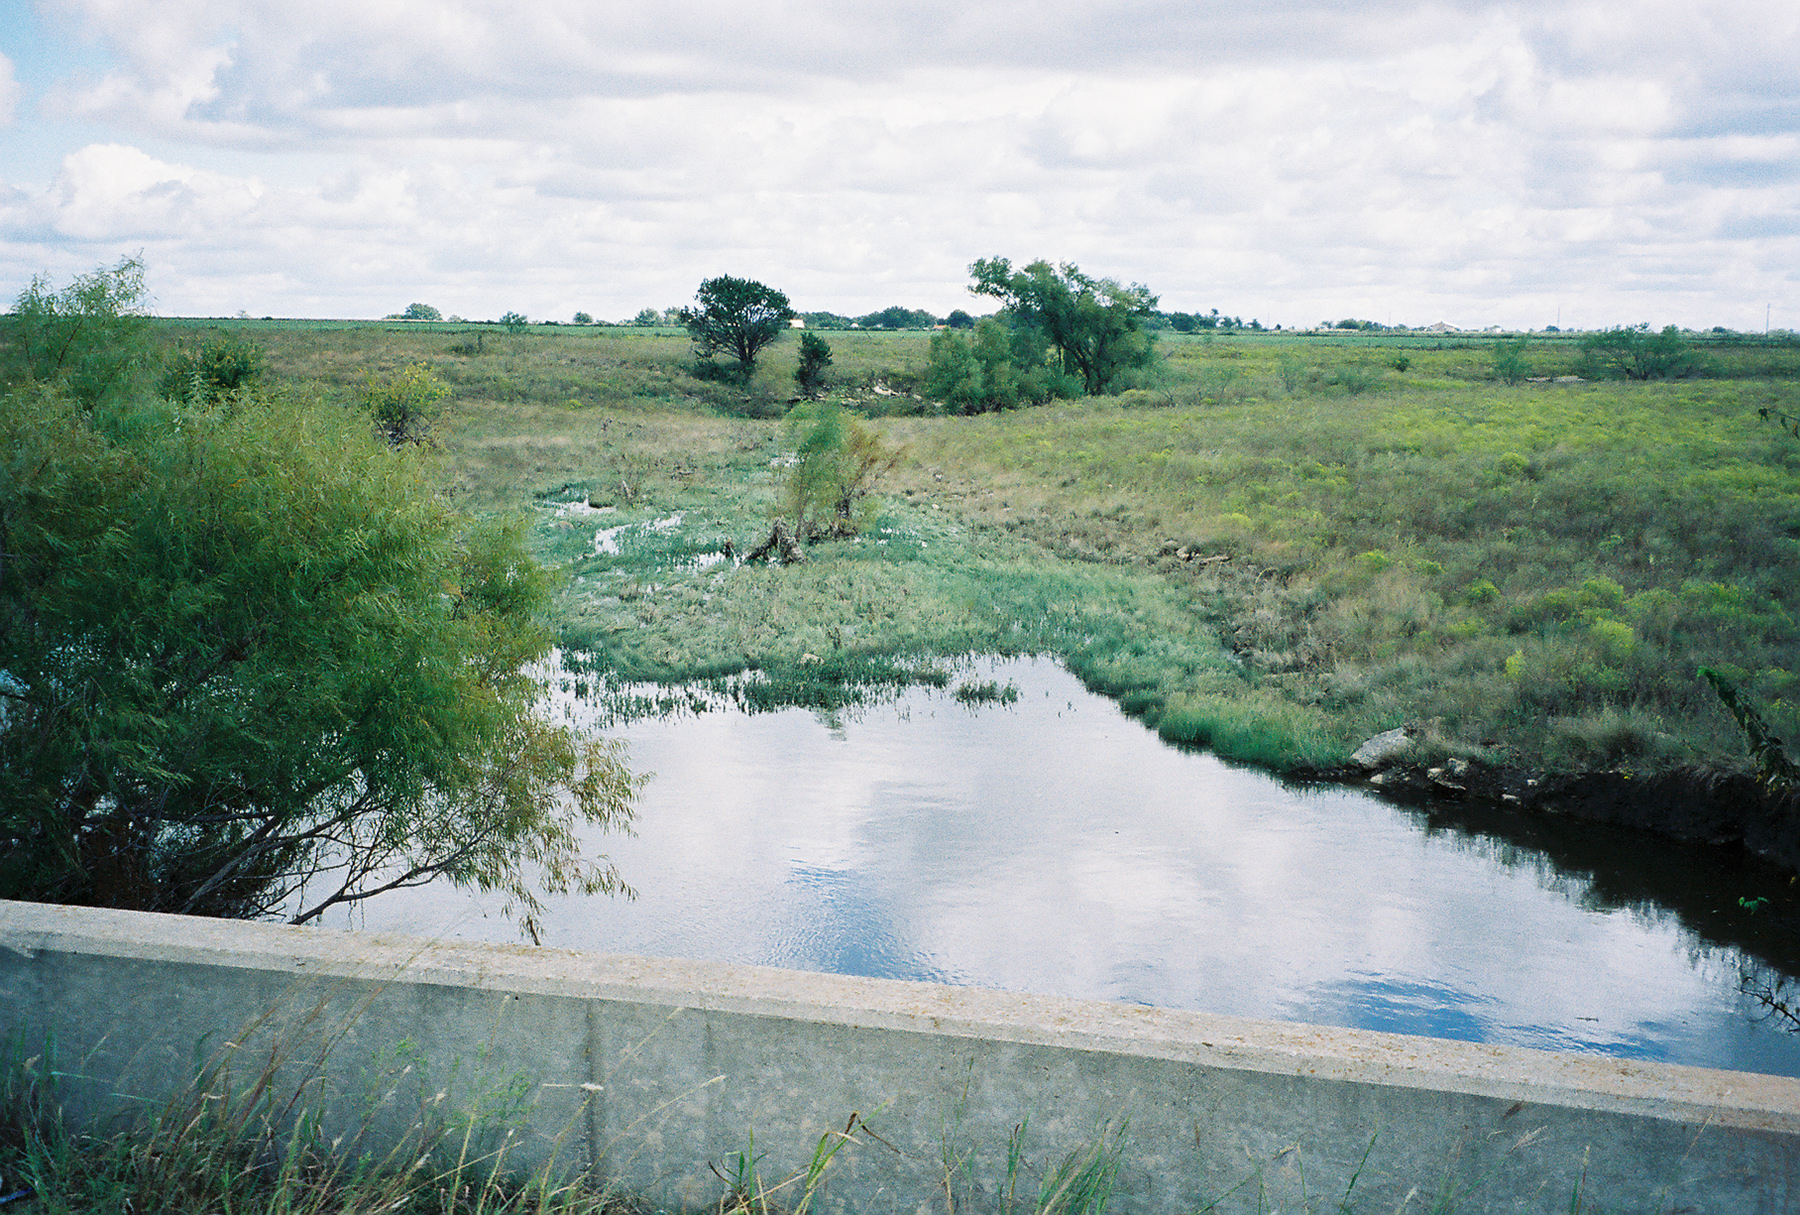 Landscape of watershed site